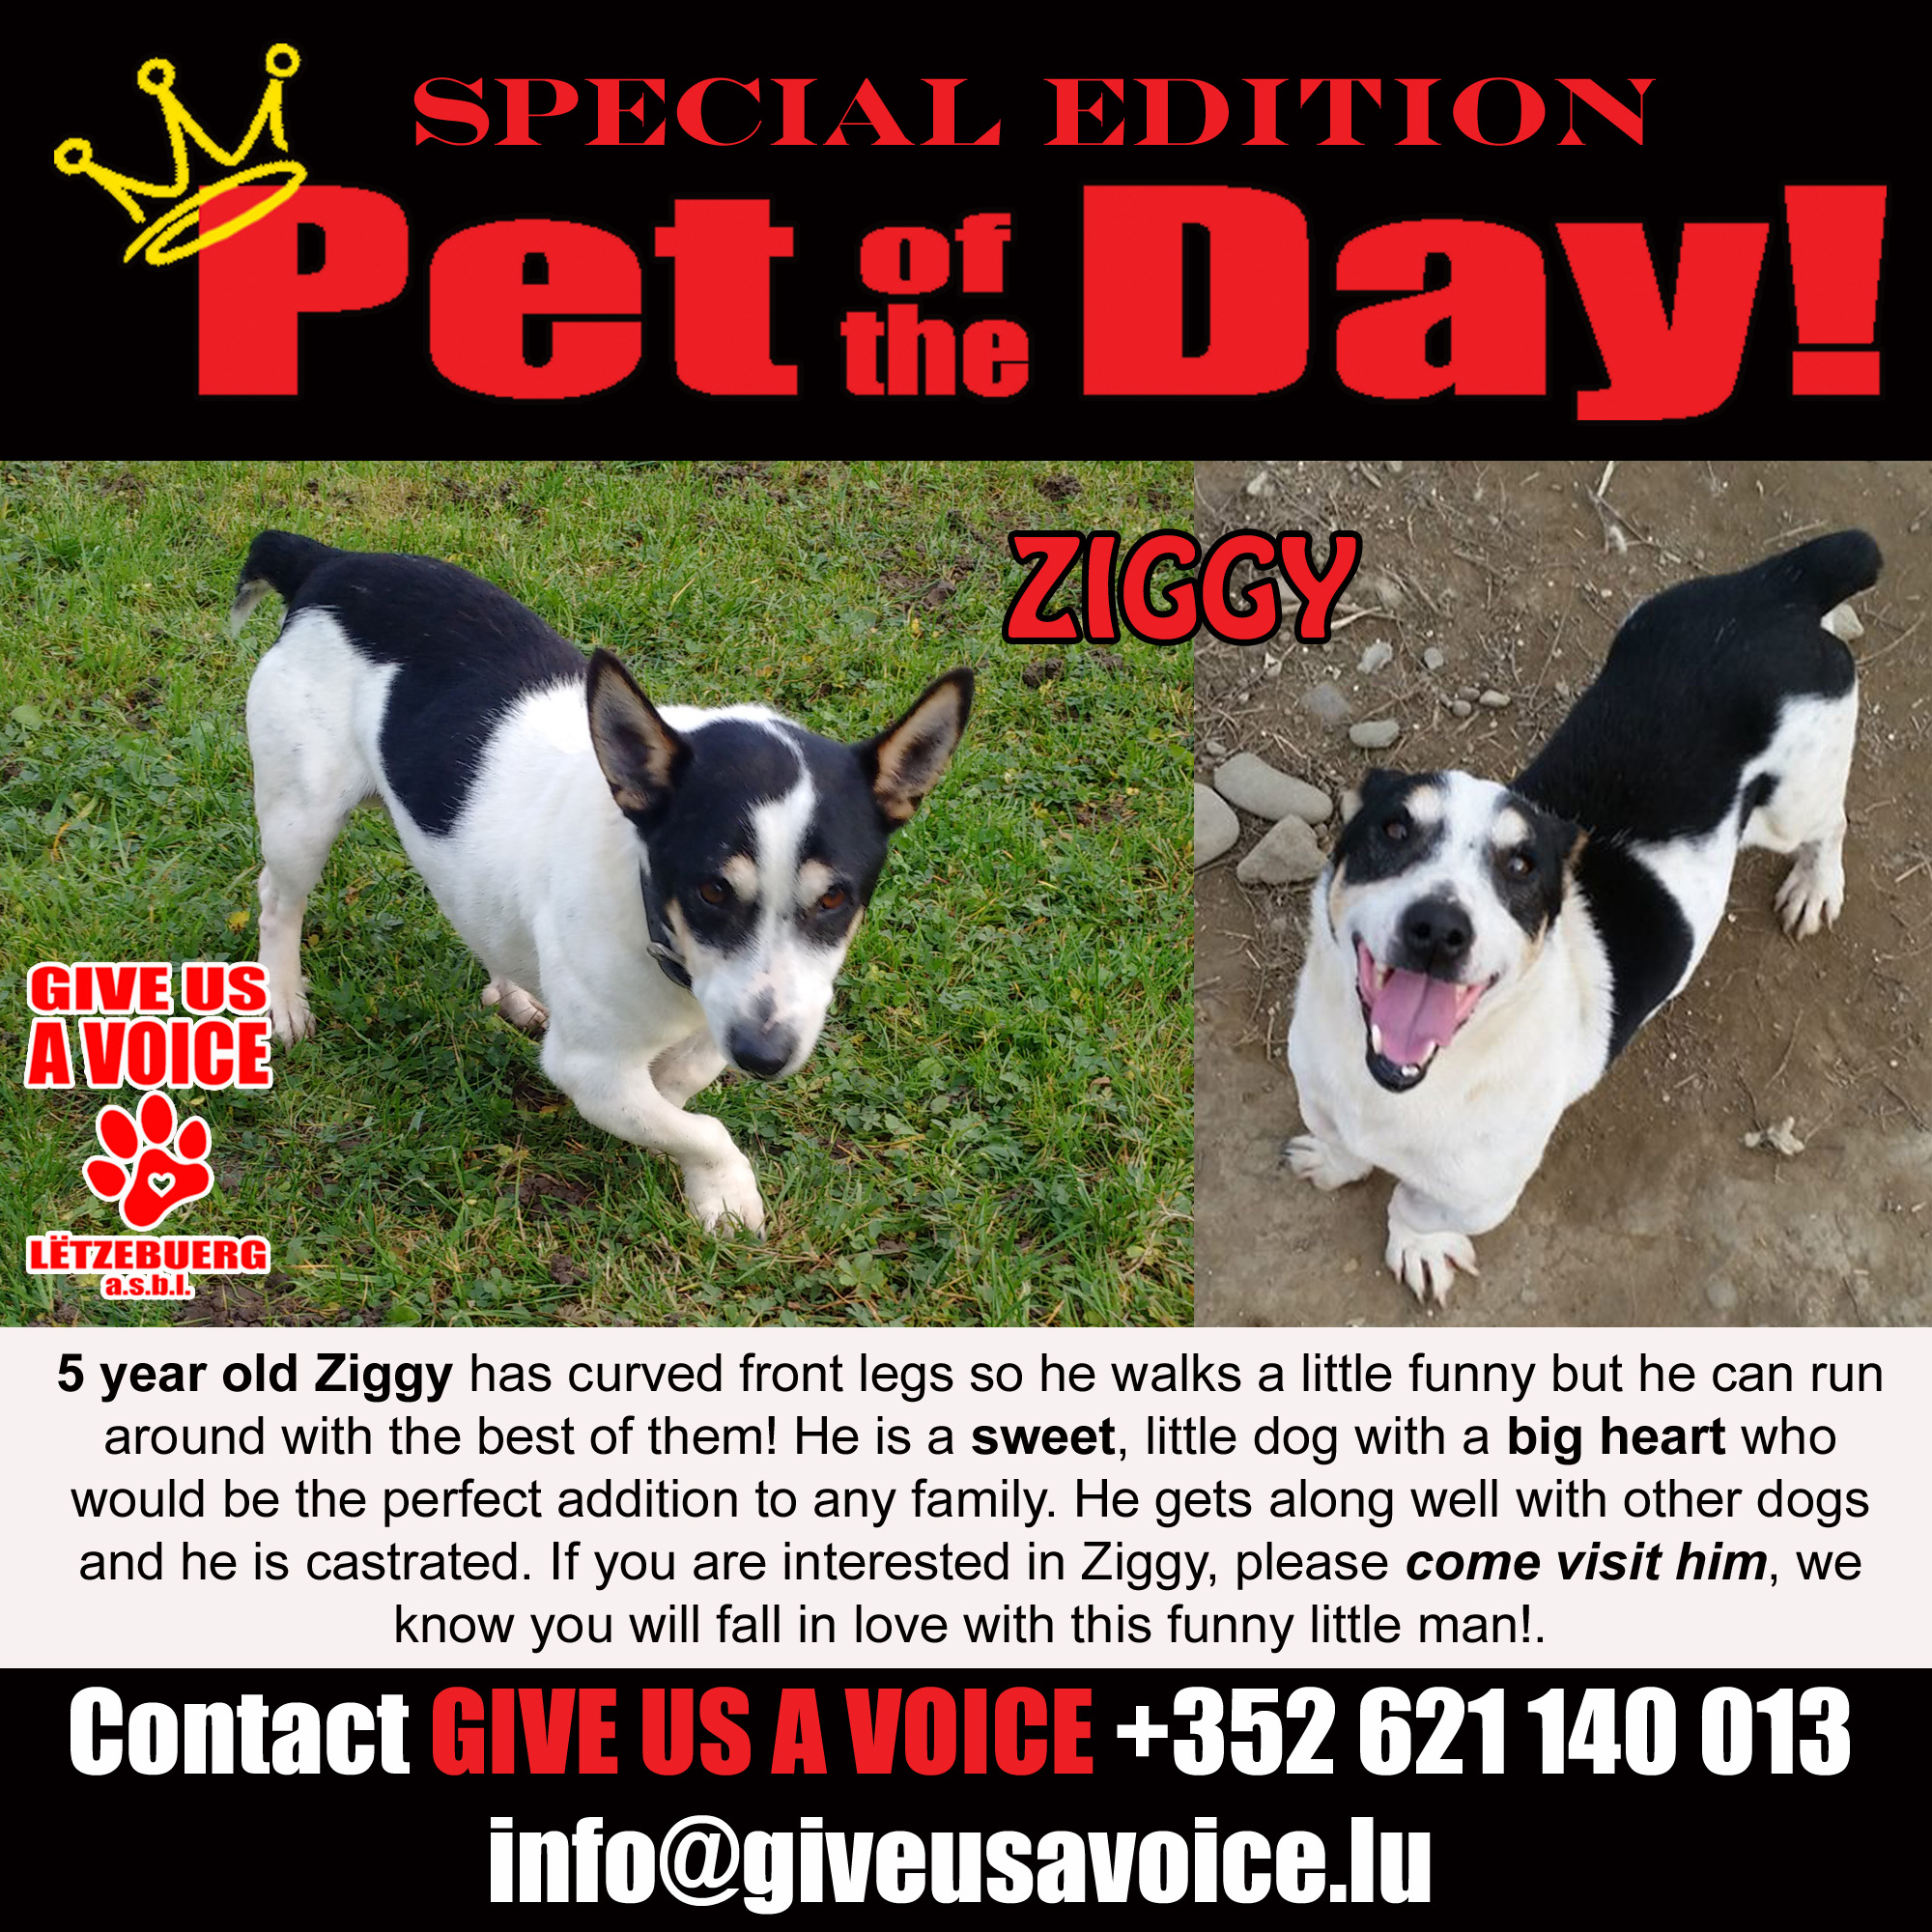 11-11-15 Pet of the Day